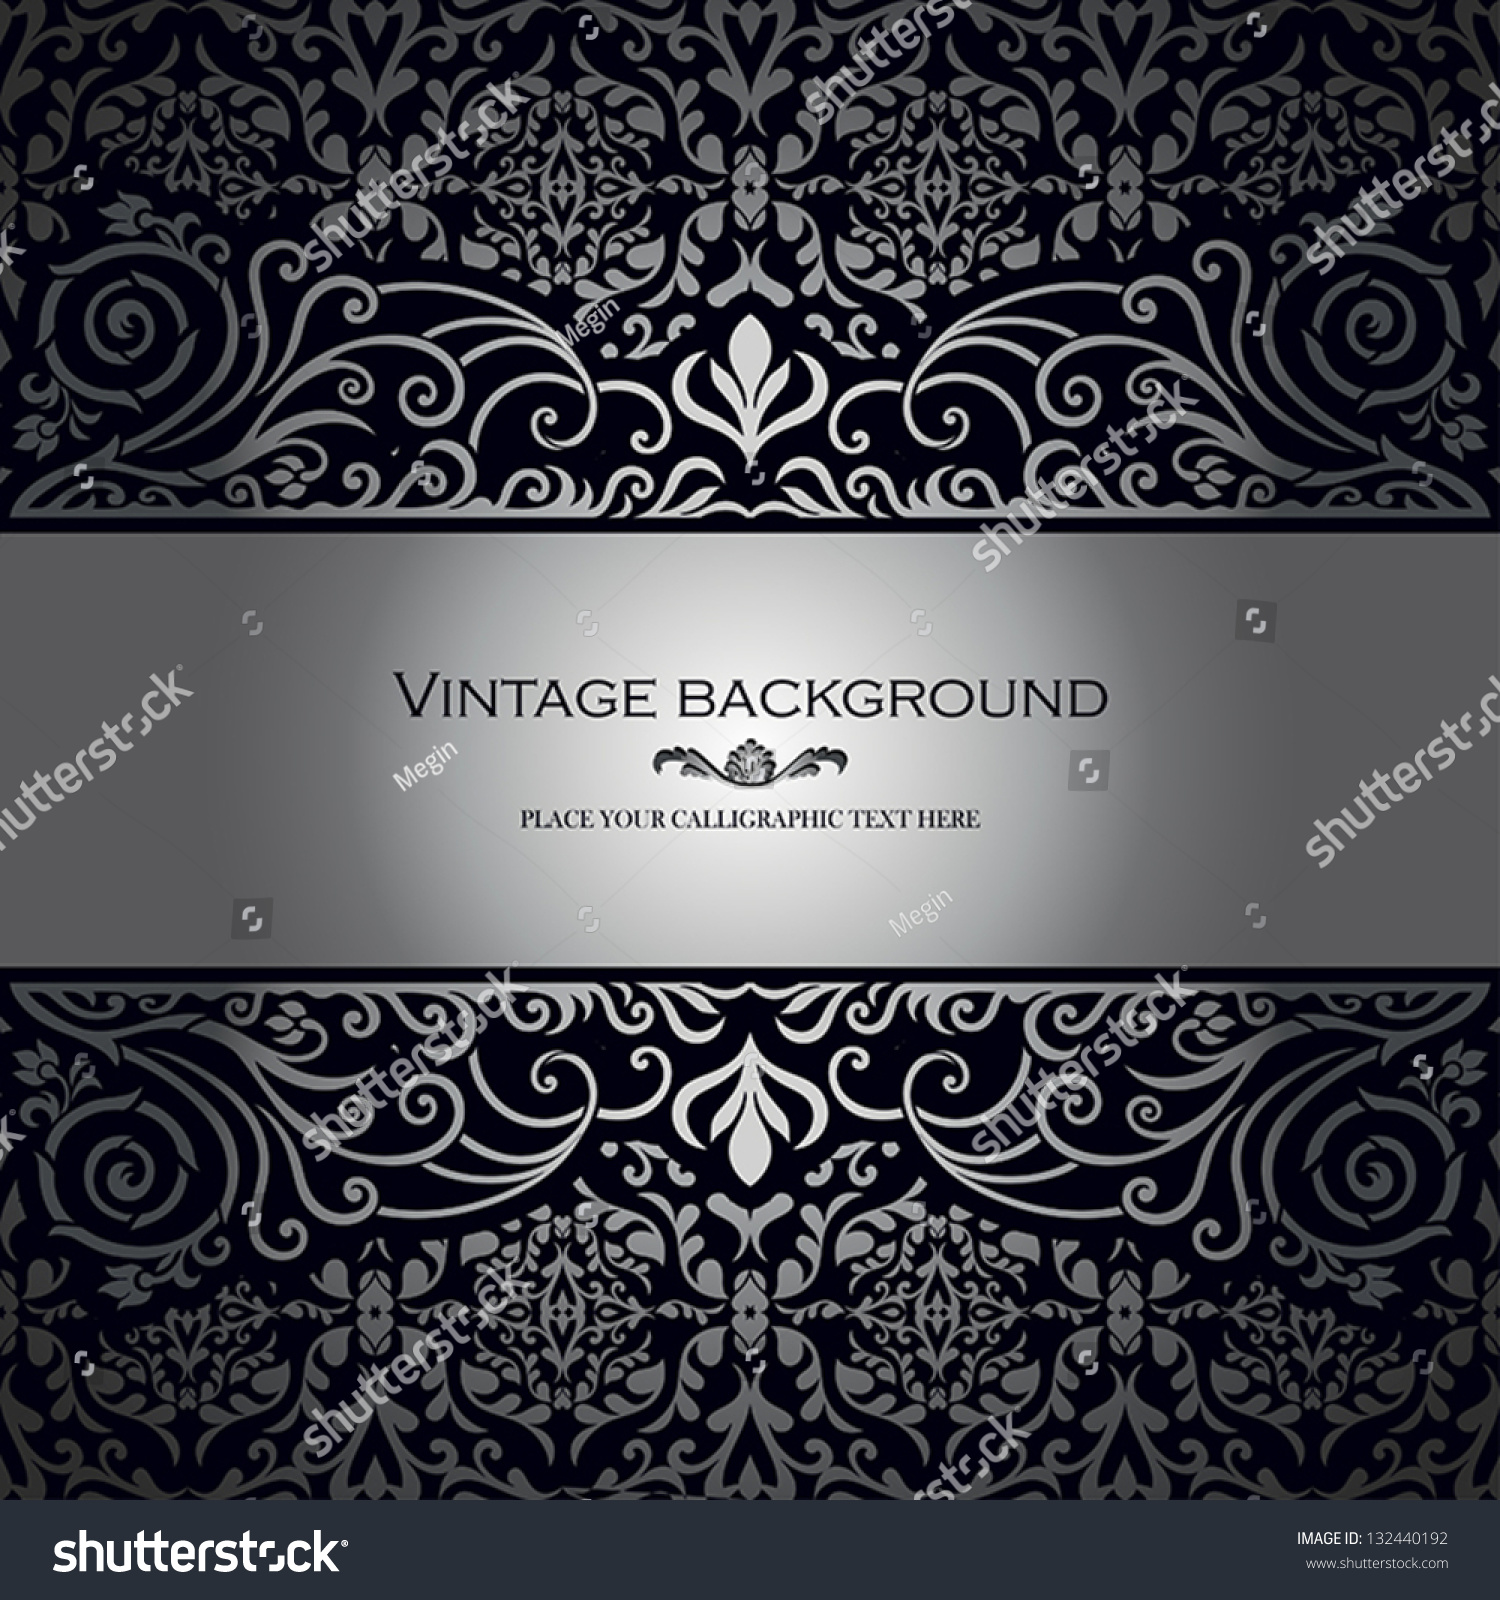 Vintage background ornate baroque pattern vector illustration stock -  Vectors Illustrations Footage Music Vintage Background Antique Victorian Silver Ornament Baroque Frame Beautiful Old Paper